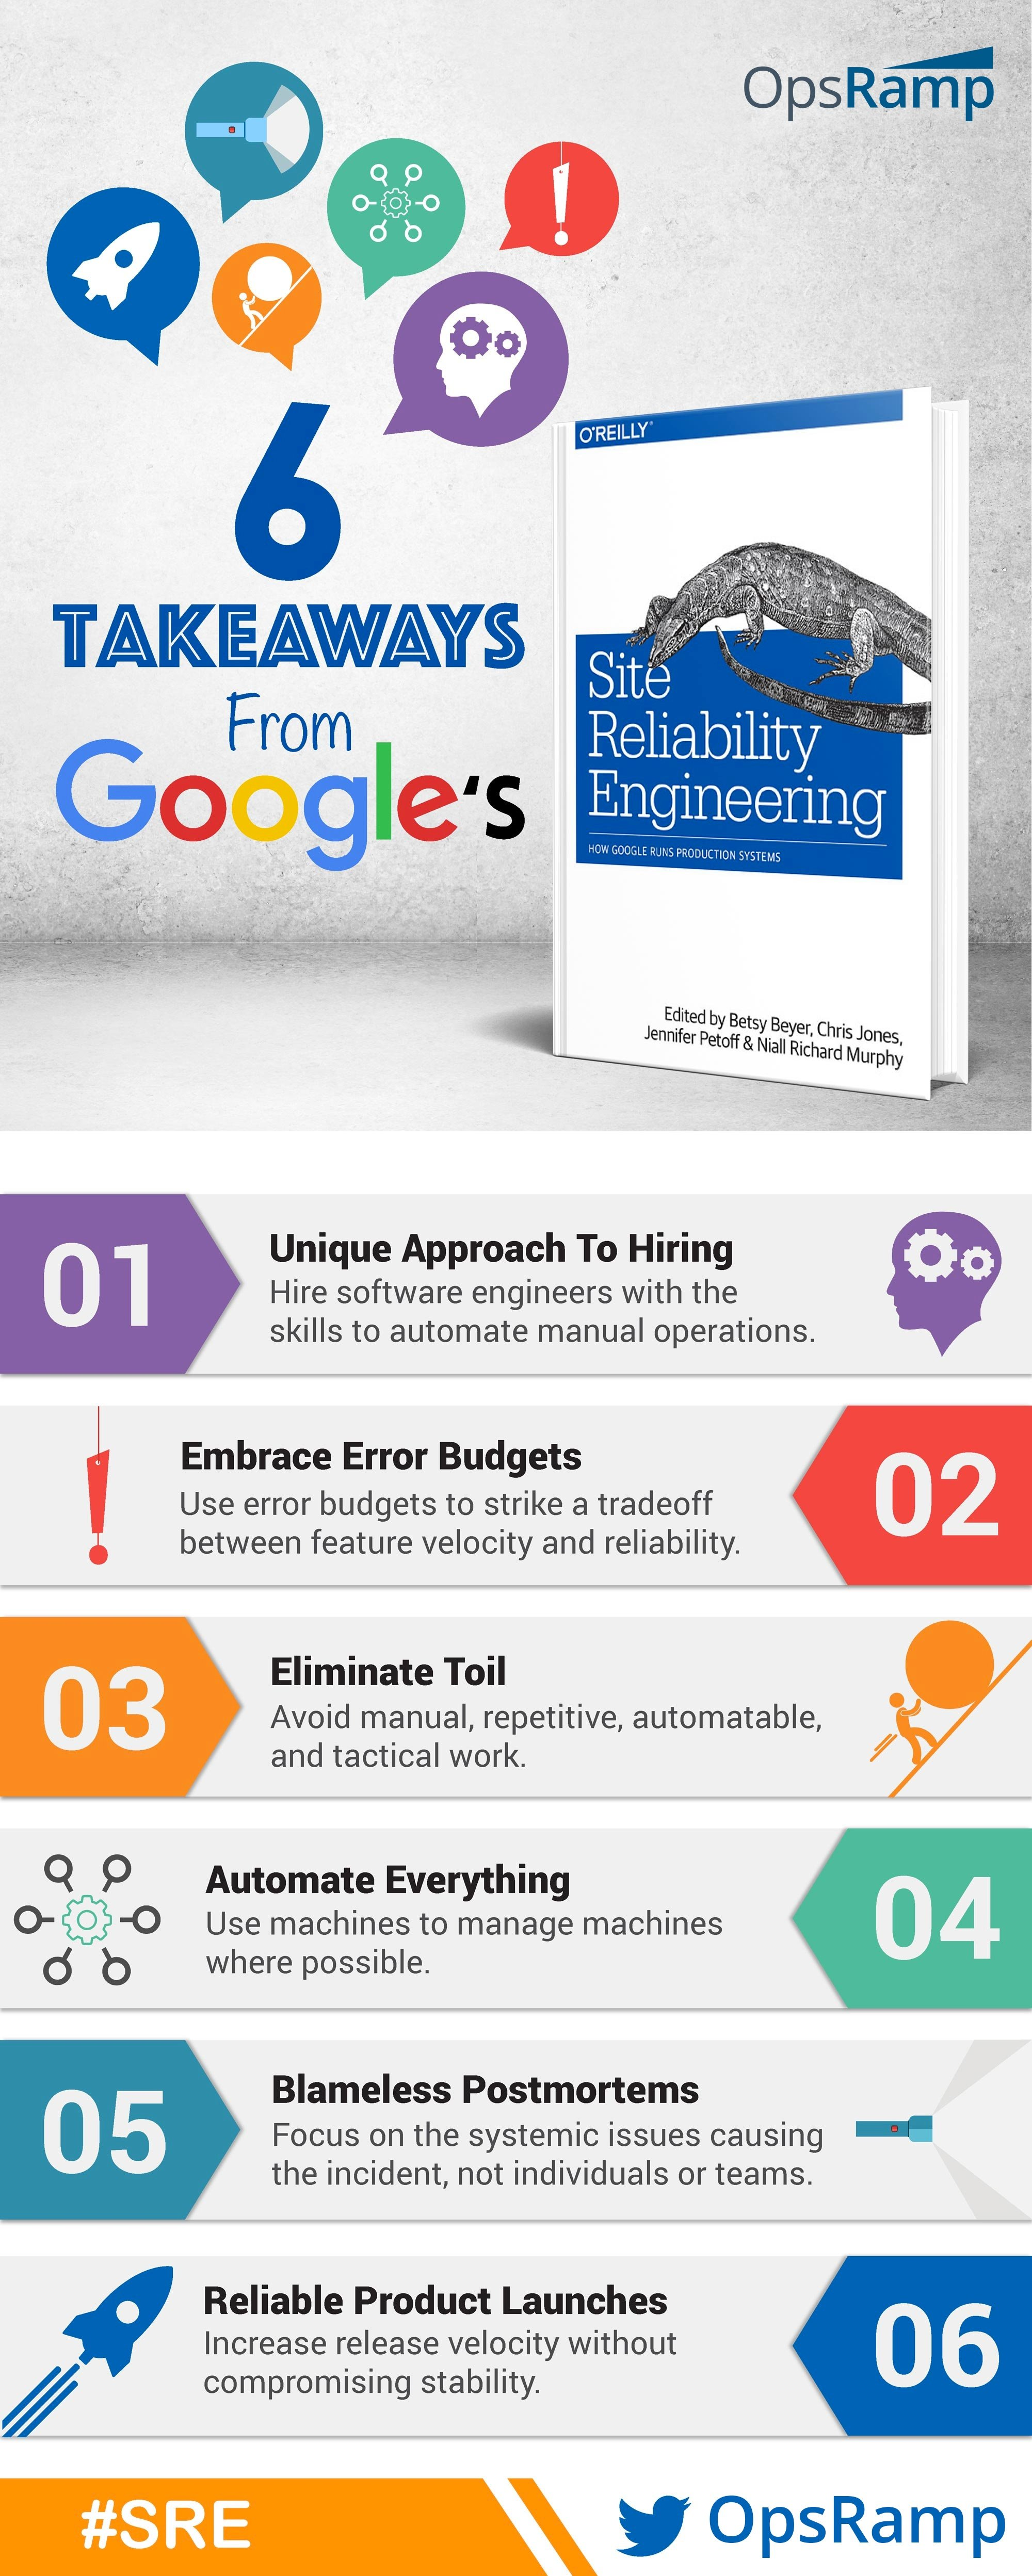 Site Reliability Engineering Infographic